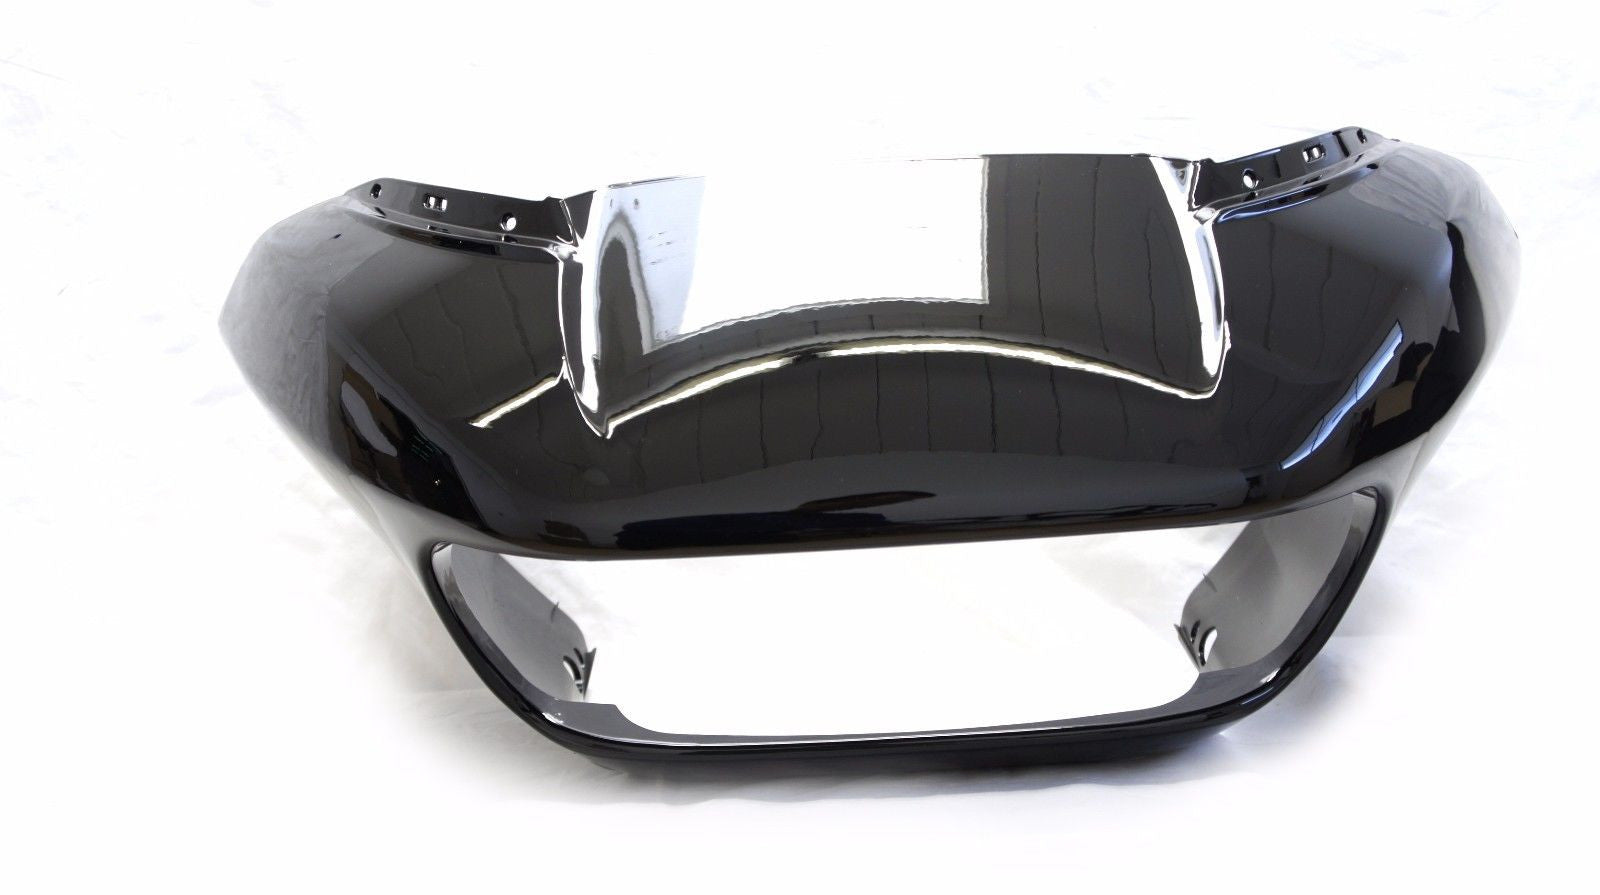 Mutazu Vivid Black Outer ABS Front Fairing for Harley Road Glide 2015-UP